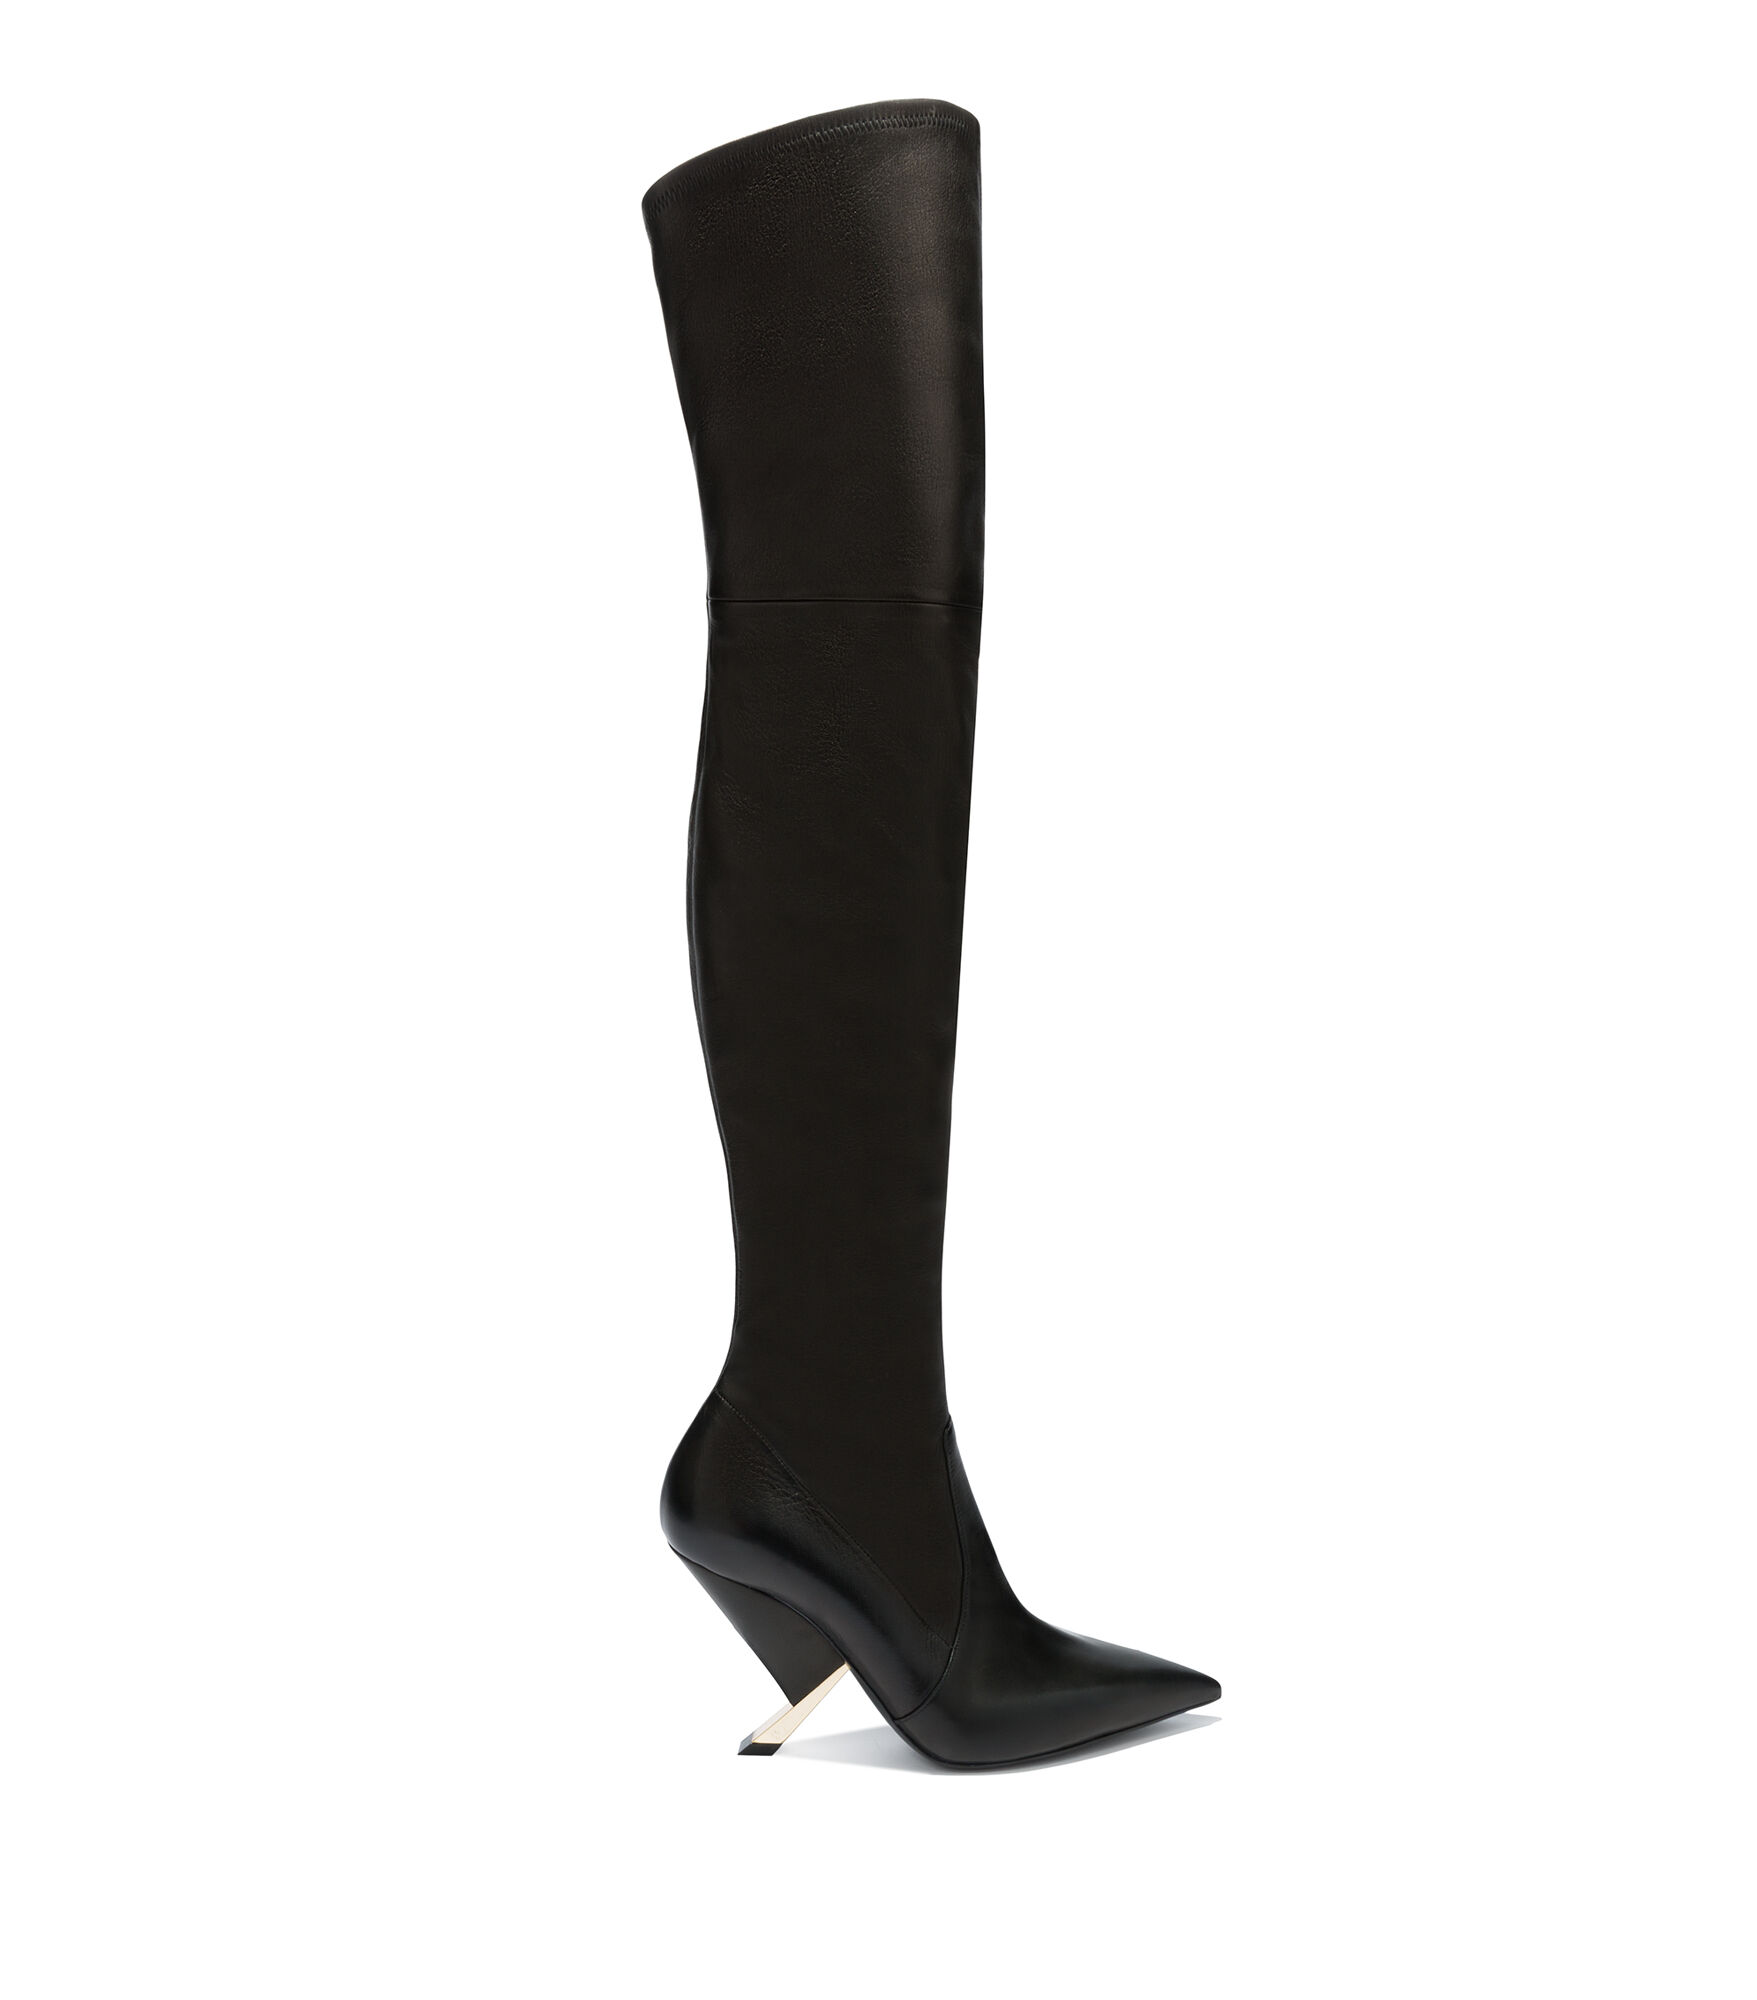 Casadei High Boots - X Blade Black Nappa Leather